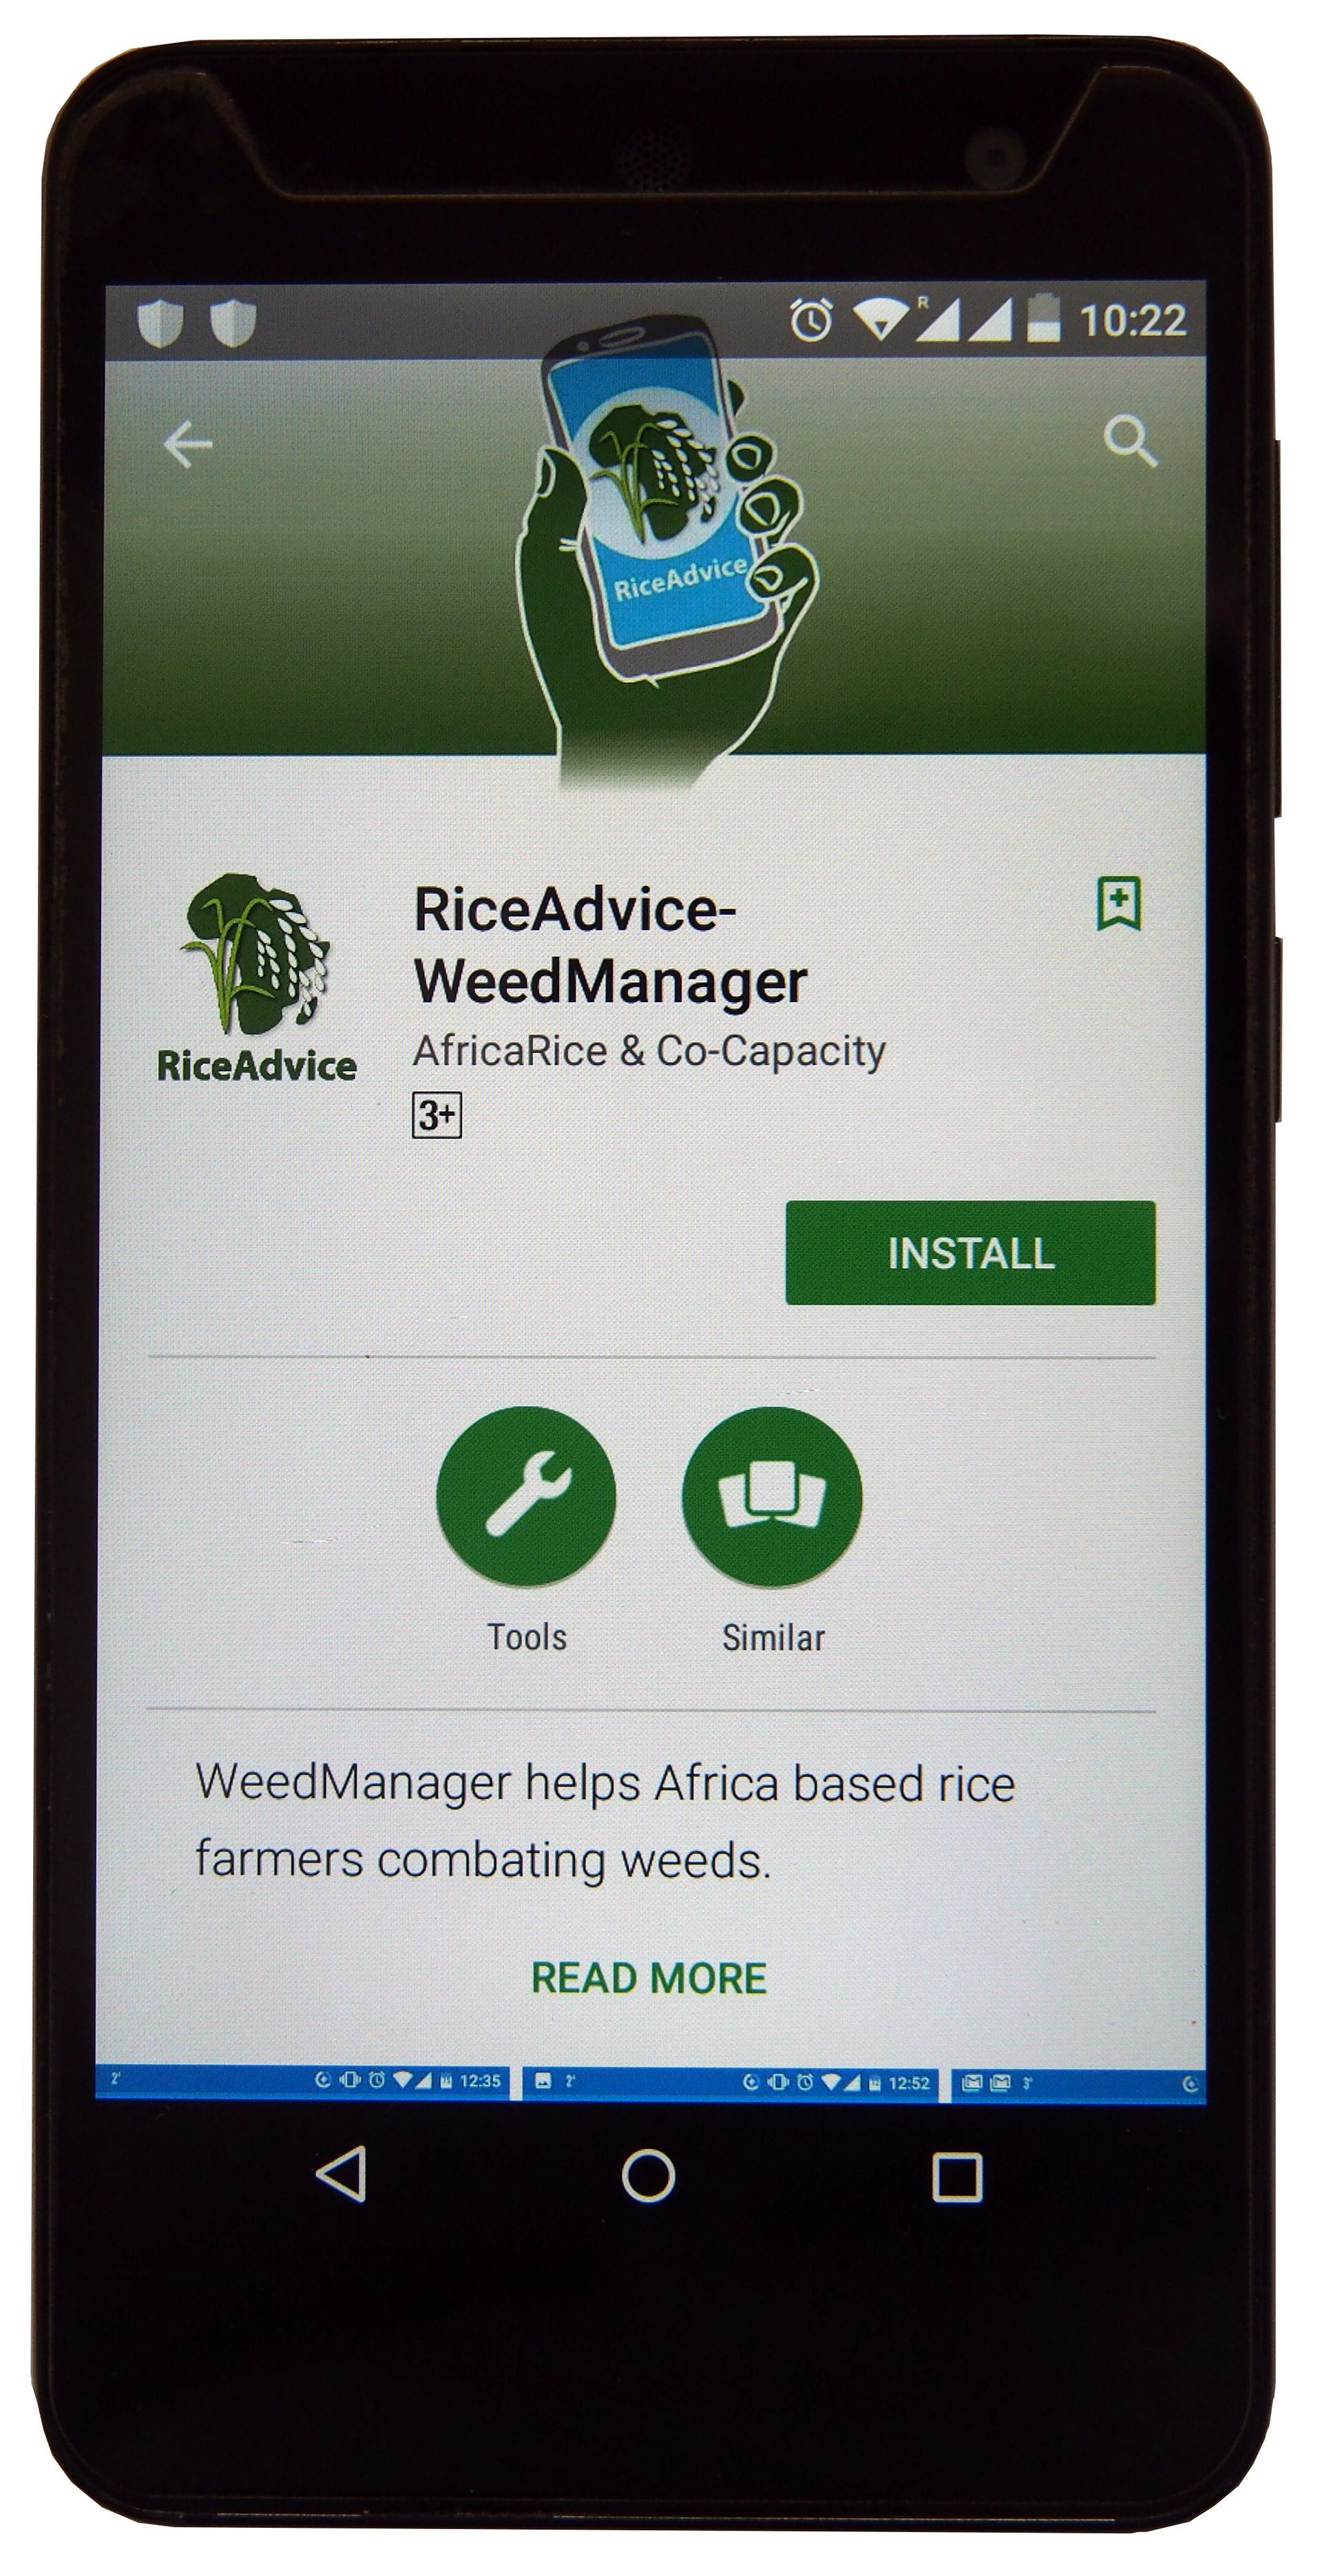 RiceAdvice-WeedManager